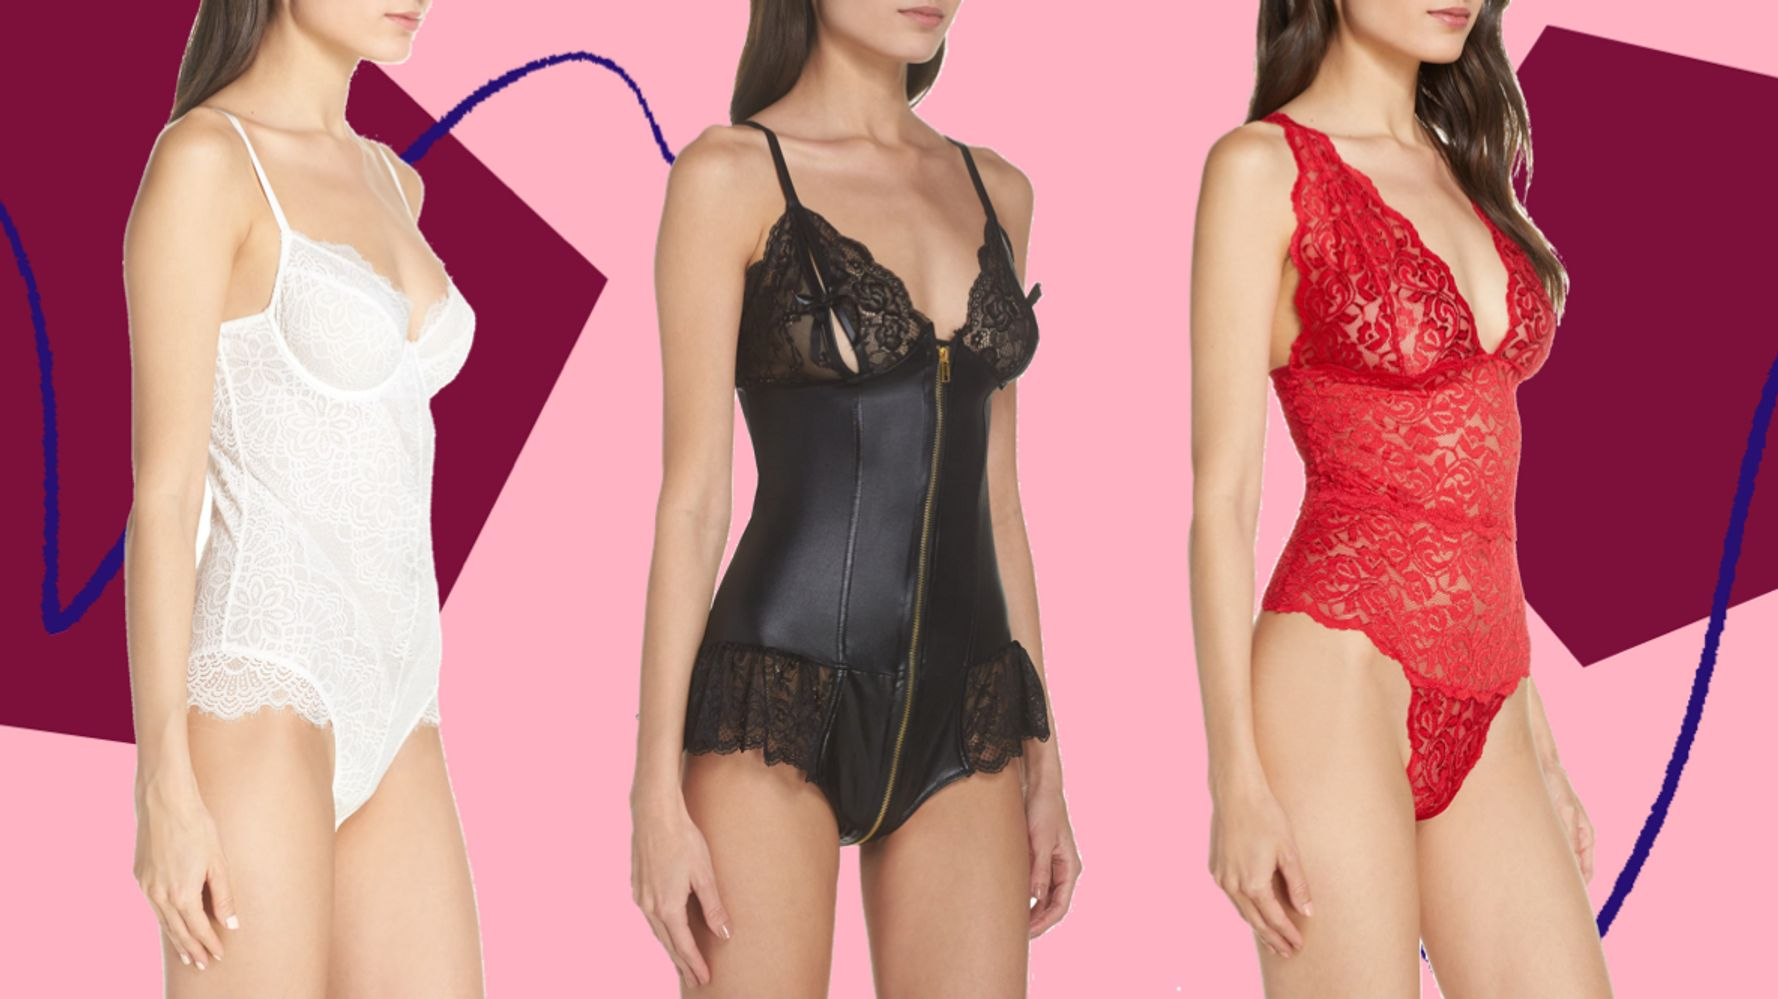 The Best Lingerie And Sleepwear To Slip Into On Valentine's Day